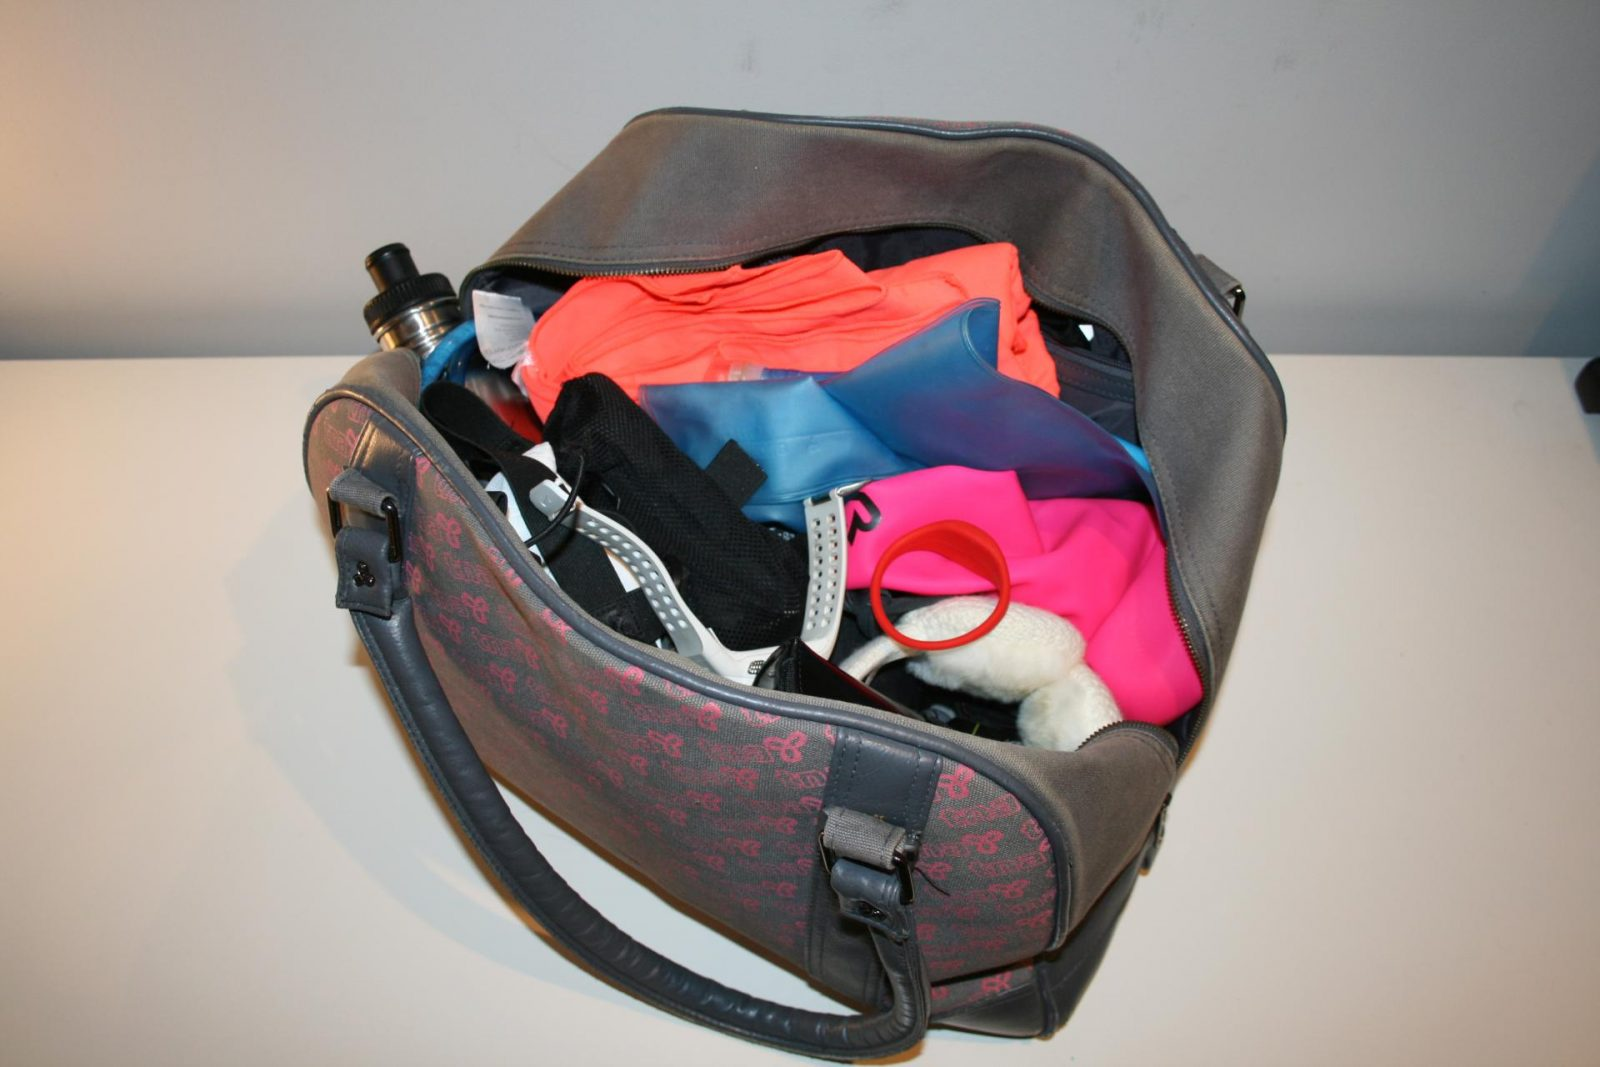 My gym (storage) bag